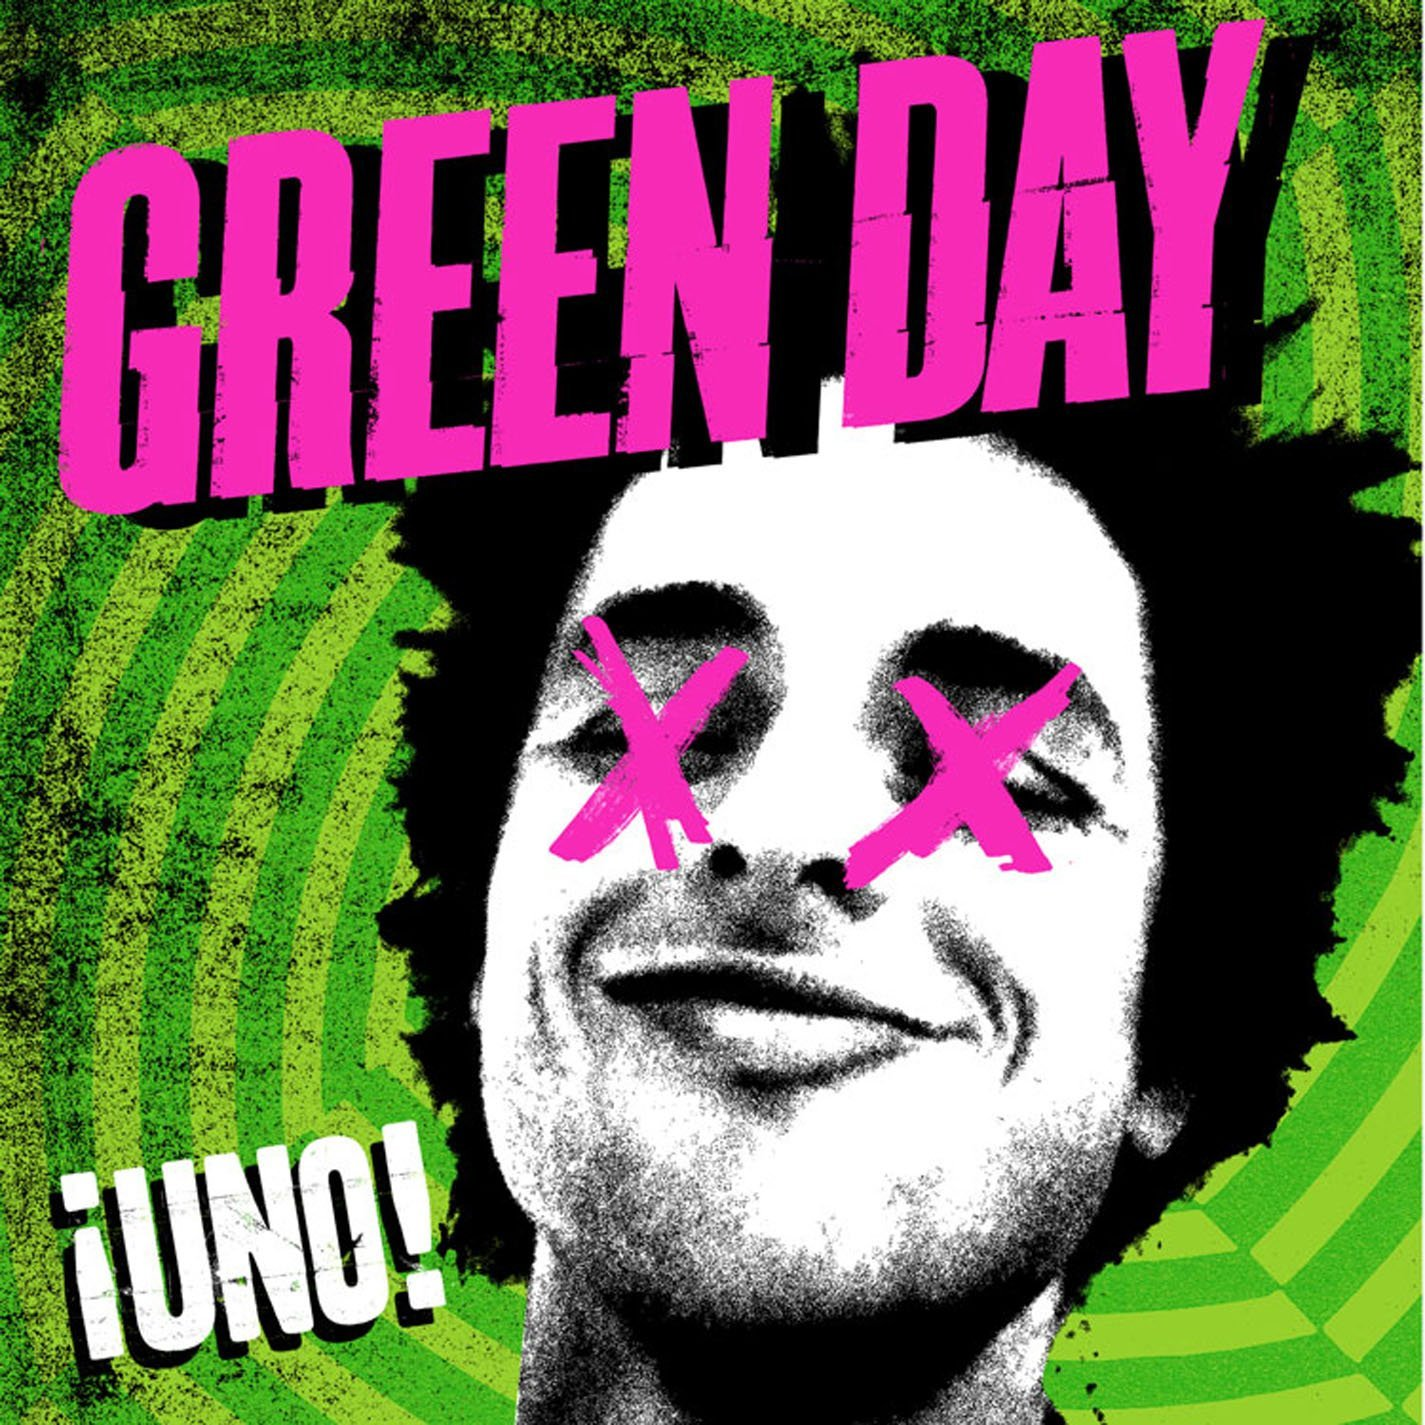 Green Day, ¡Uno! | Album Review